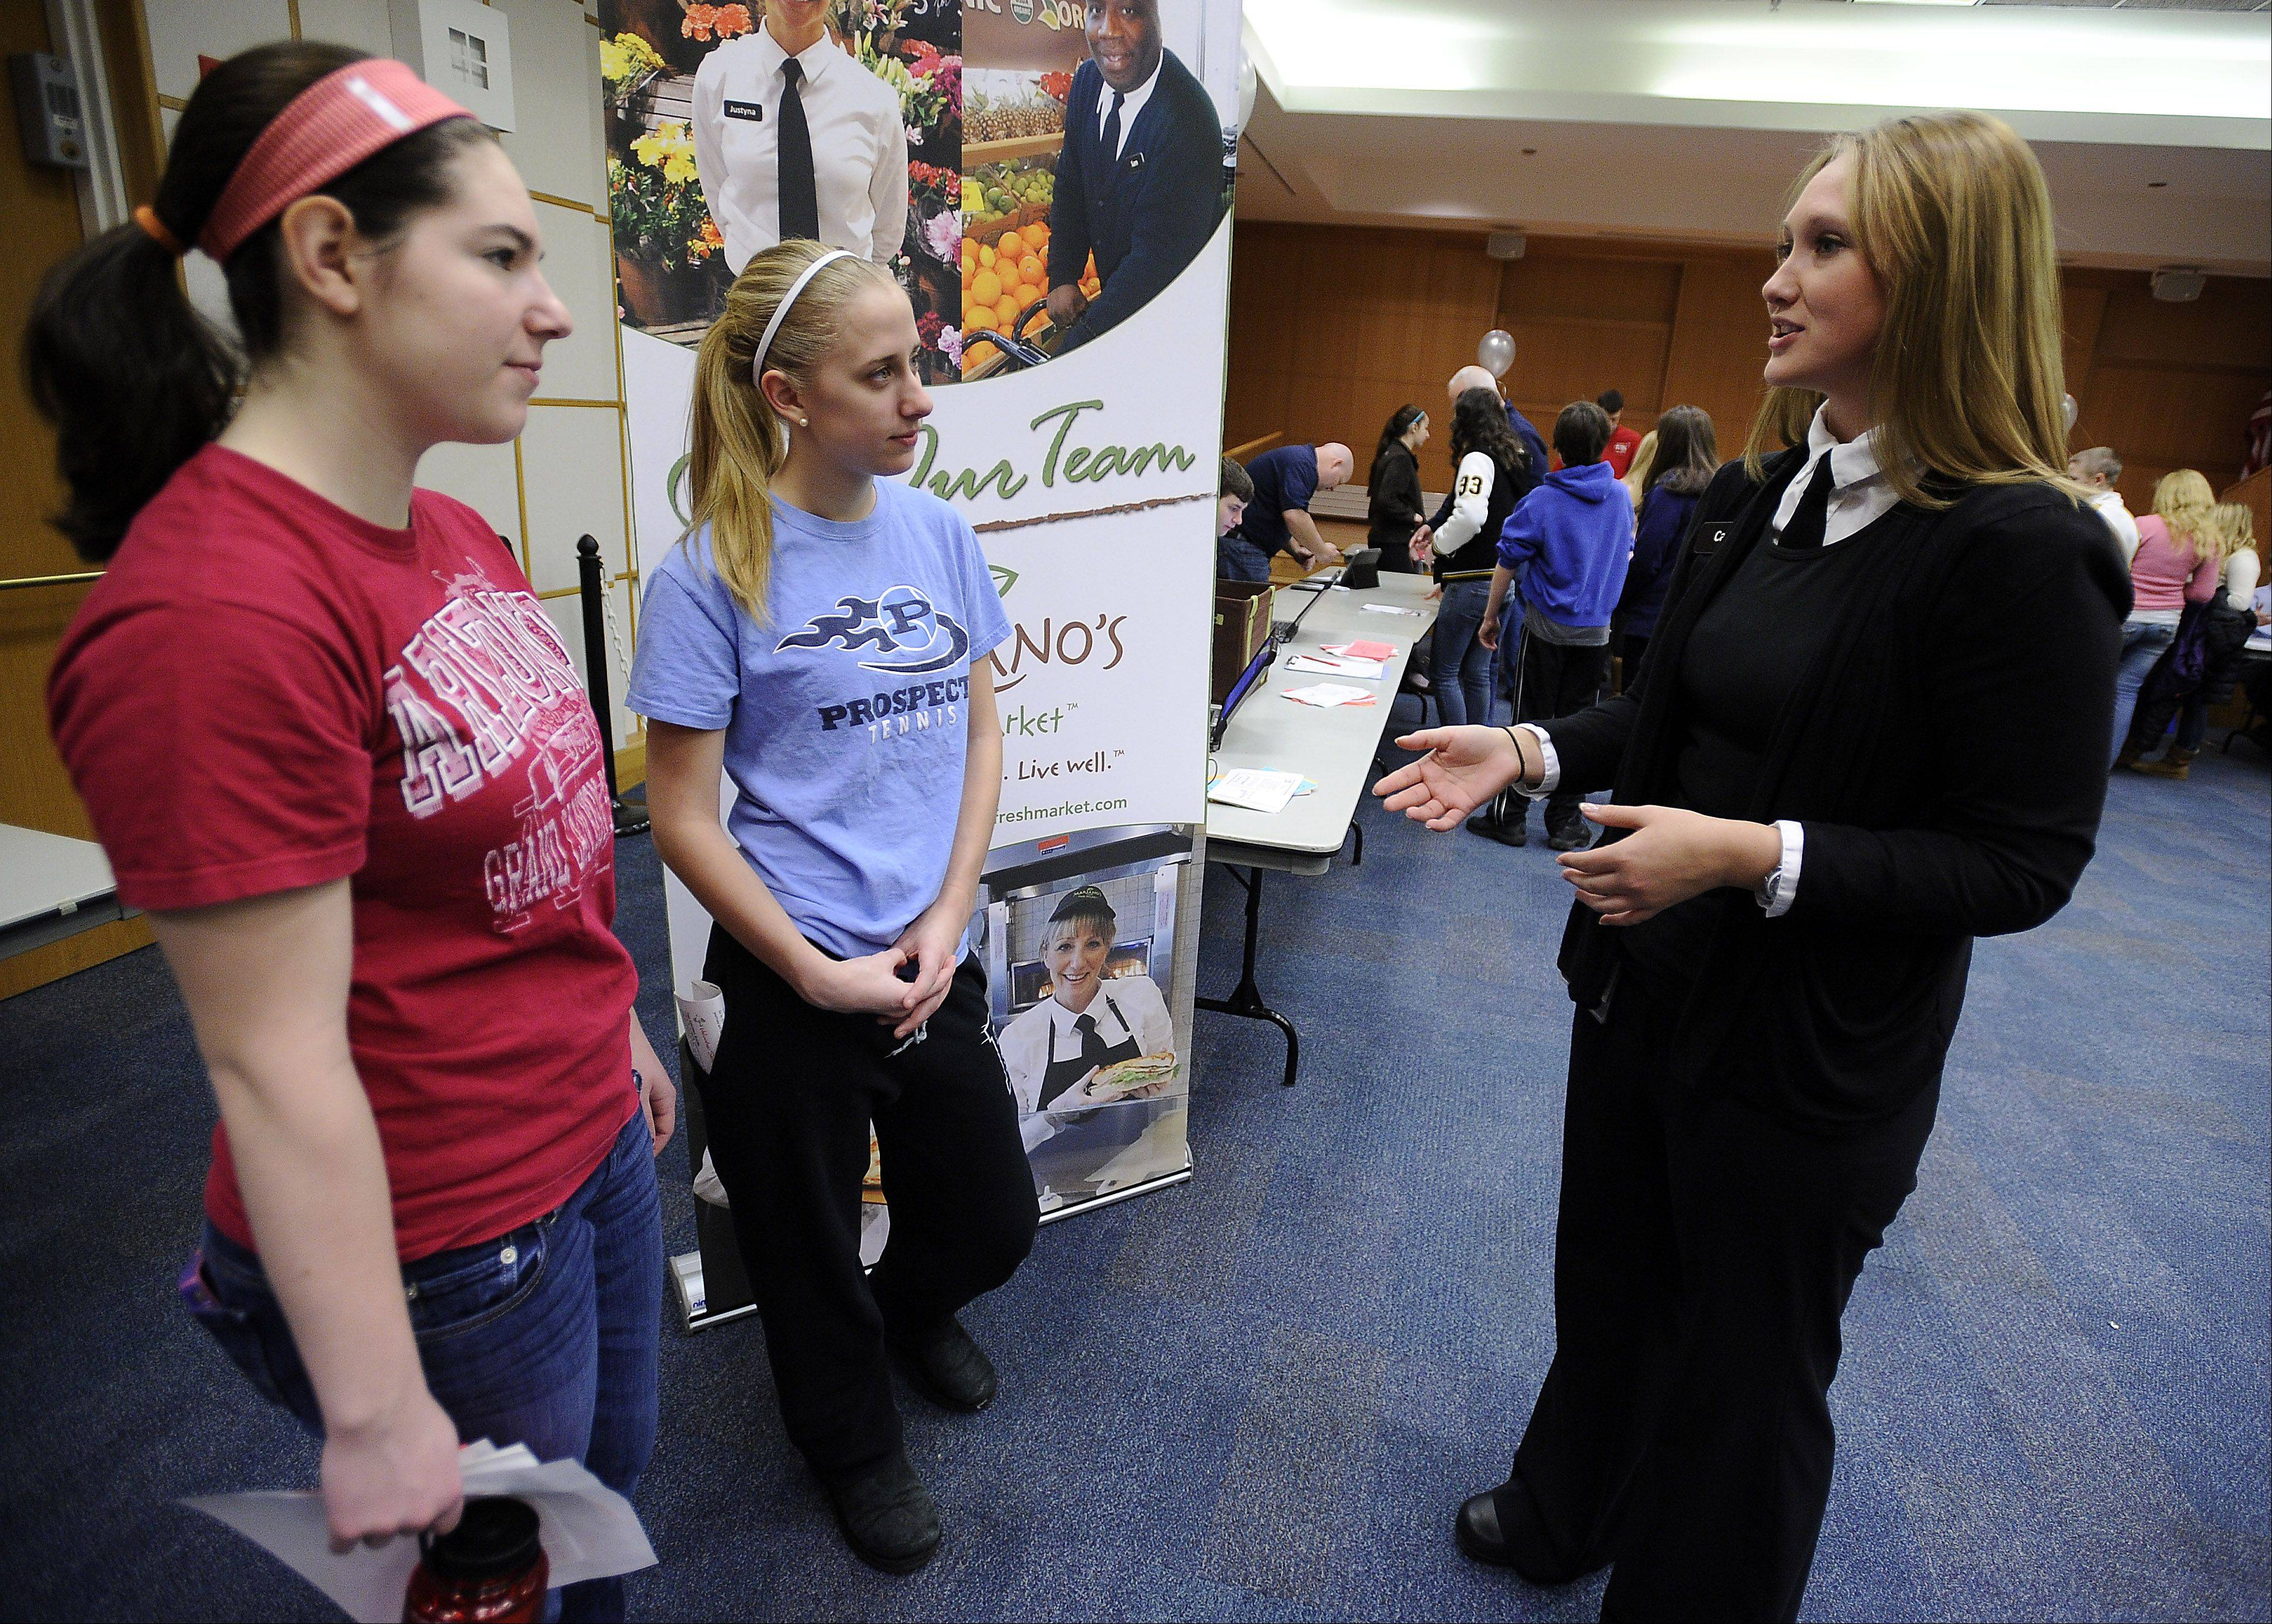 Jessica Hirsh, 16, and her friend Lauren Becherer, 16, both of Prospect High School talk with Cari Henderson of Mariano's grocery in Arlington Heights about summer job prospects at a teen job fair Saturday at the Arlington Heights Memorial Library.